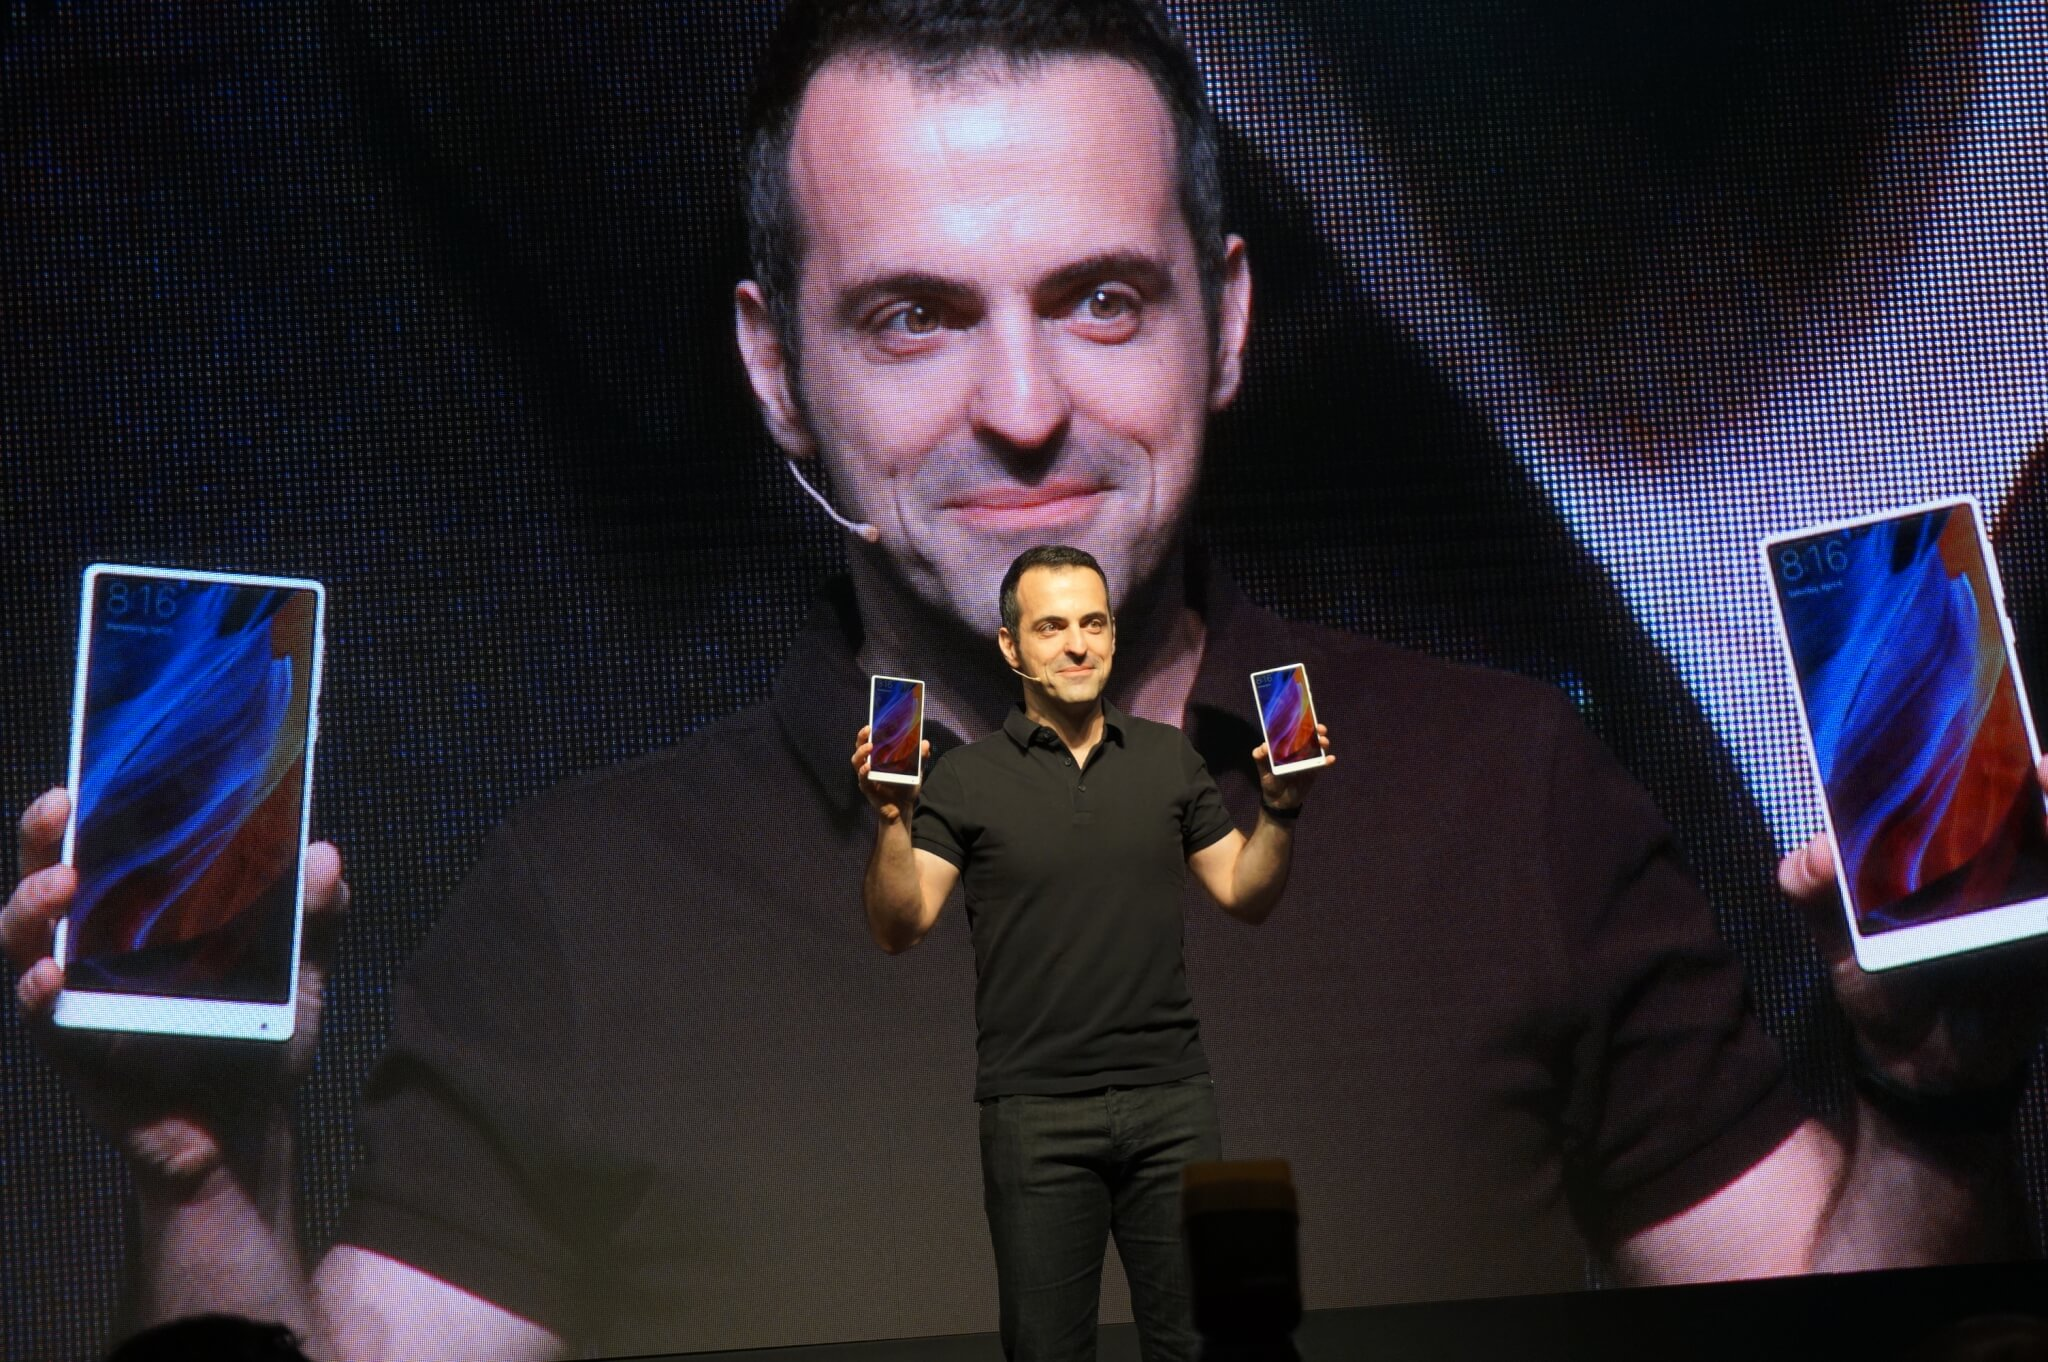 Xiaomi's Hugo Barra holds up the white version of the Mi Mix smartphone.